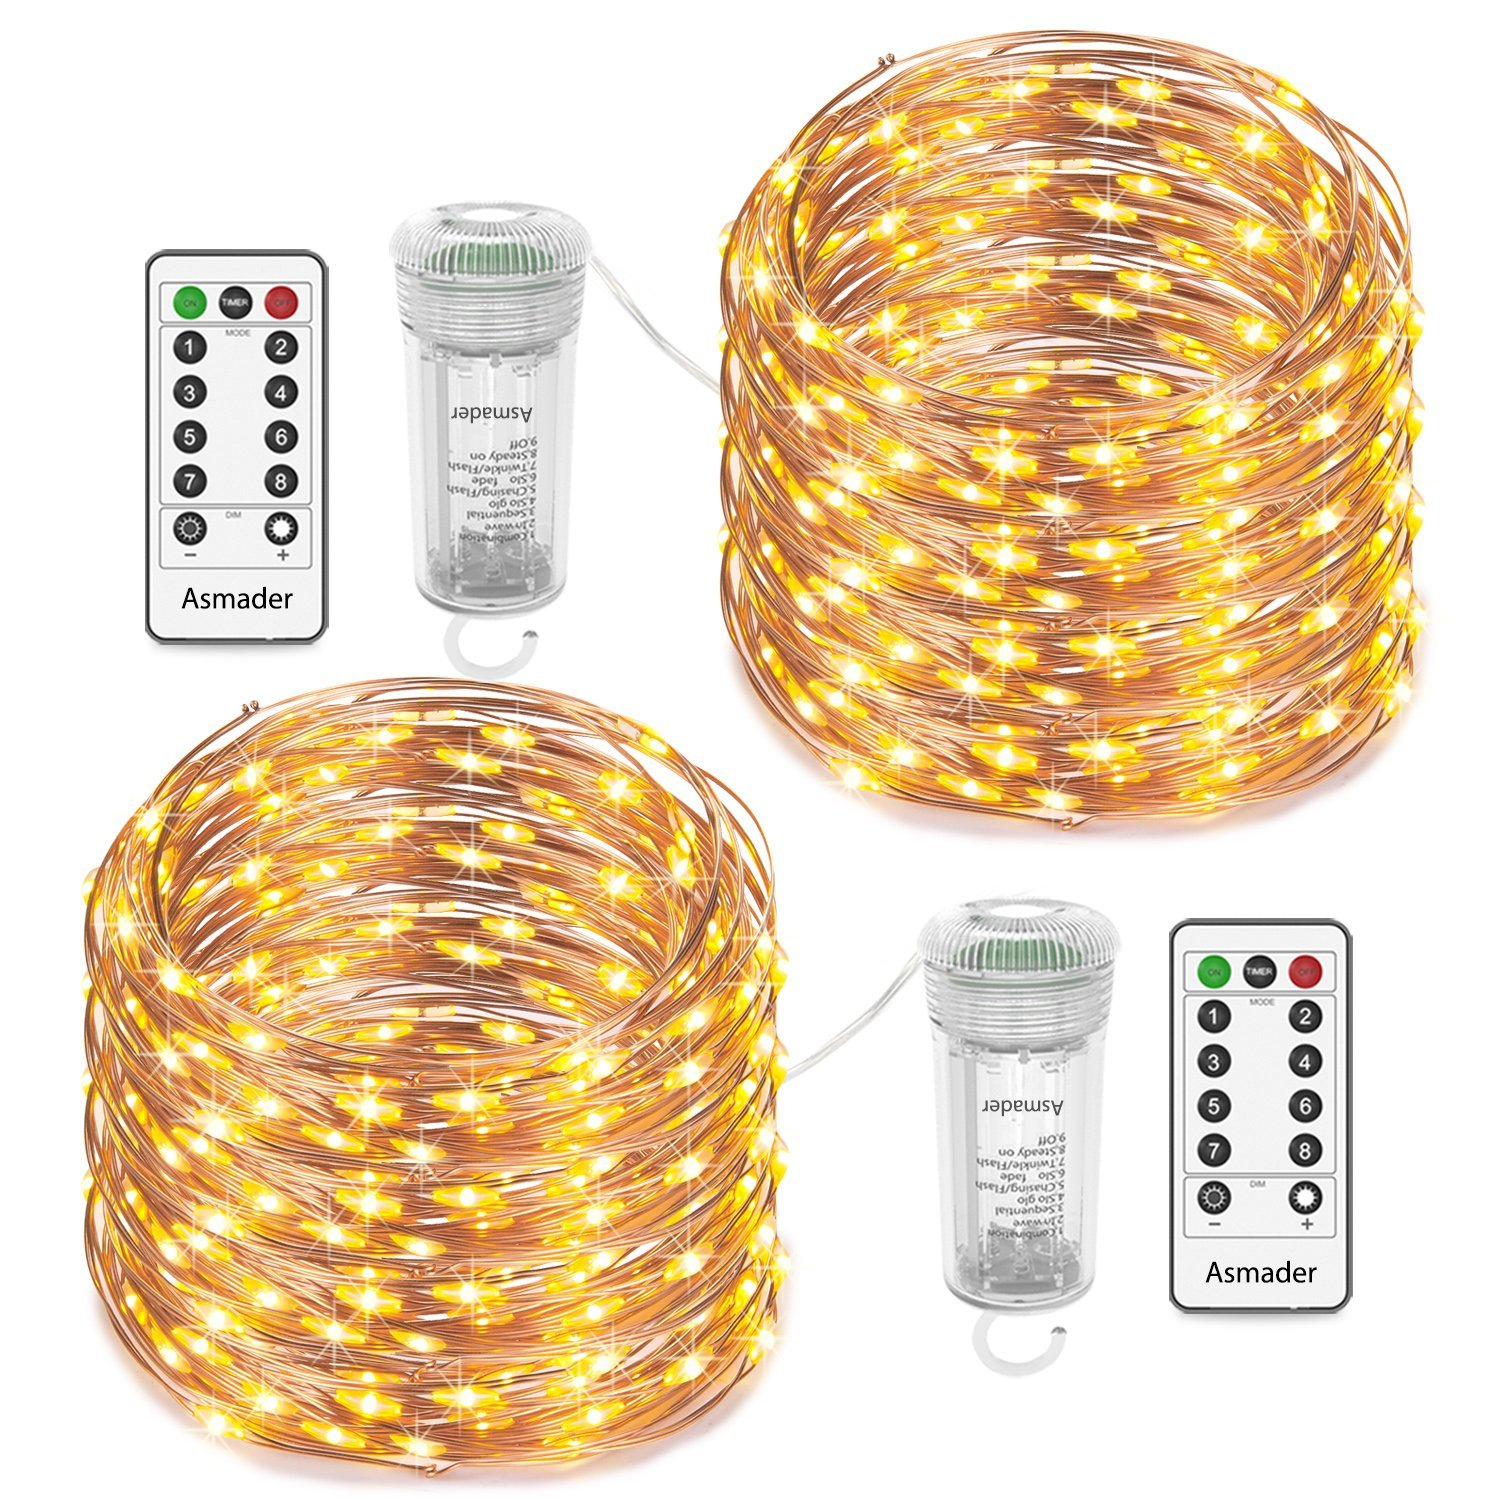 Asmader Fairy Lights 2 Pack Battery Operated String Lights, IP67 Waterproof 8 Modes Remote Timer with 50 LEDs 16.4ft Copper Wire Decor Light for Indoor/Outdoor,Patio,Garden,Party,Holiday(Warm White) by Asmader (Image #1)